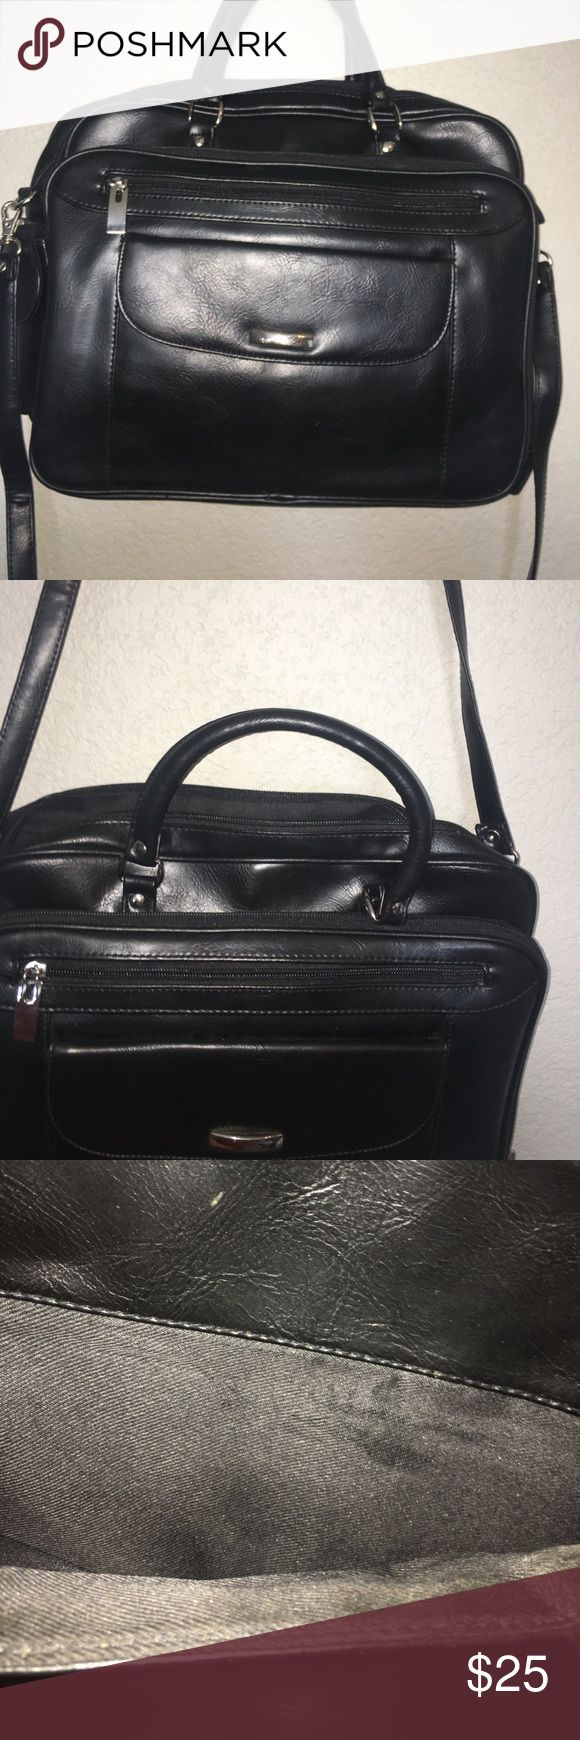 Black Briefcase style bag Black briefcase bag. No brand appears on bag. 2 main comprtments. 3 front exterior pockets, 1 medium size back exterior pocket. removable shoulder strap. Organization for sunglasses (case included), credit cards, a small planner (included), etc. small sign of wear (pictured). Vinyl leather. Nordstrom Bags Laptop Bags